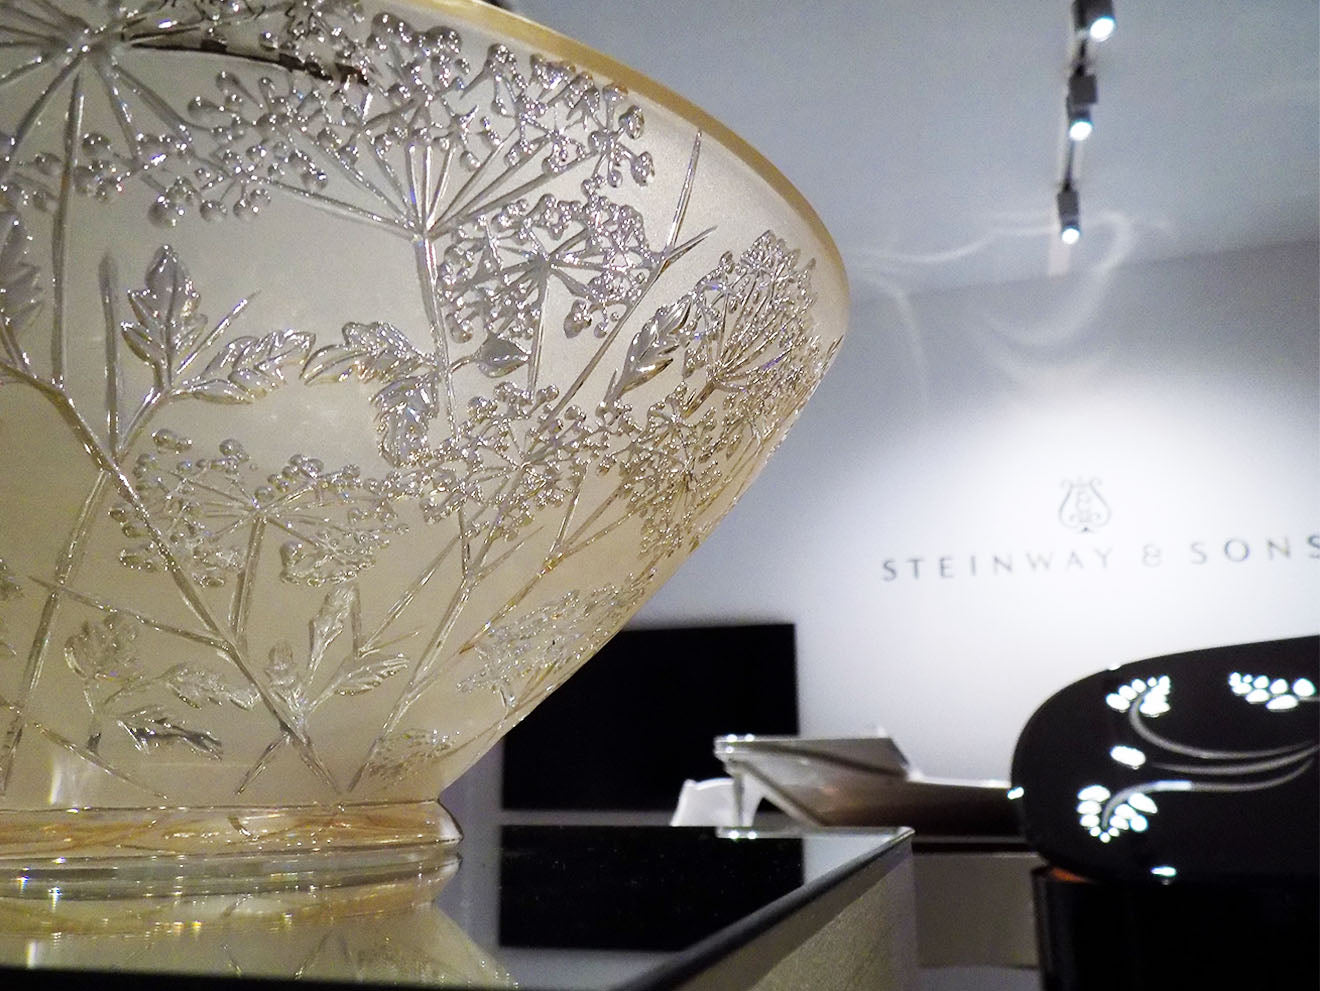 Lalique luxury crystal bowl in gold lust amber finish on display at Masterpiece 2016